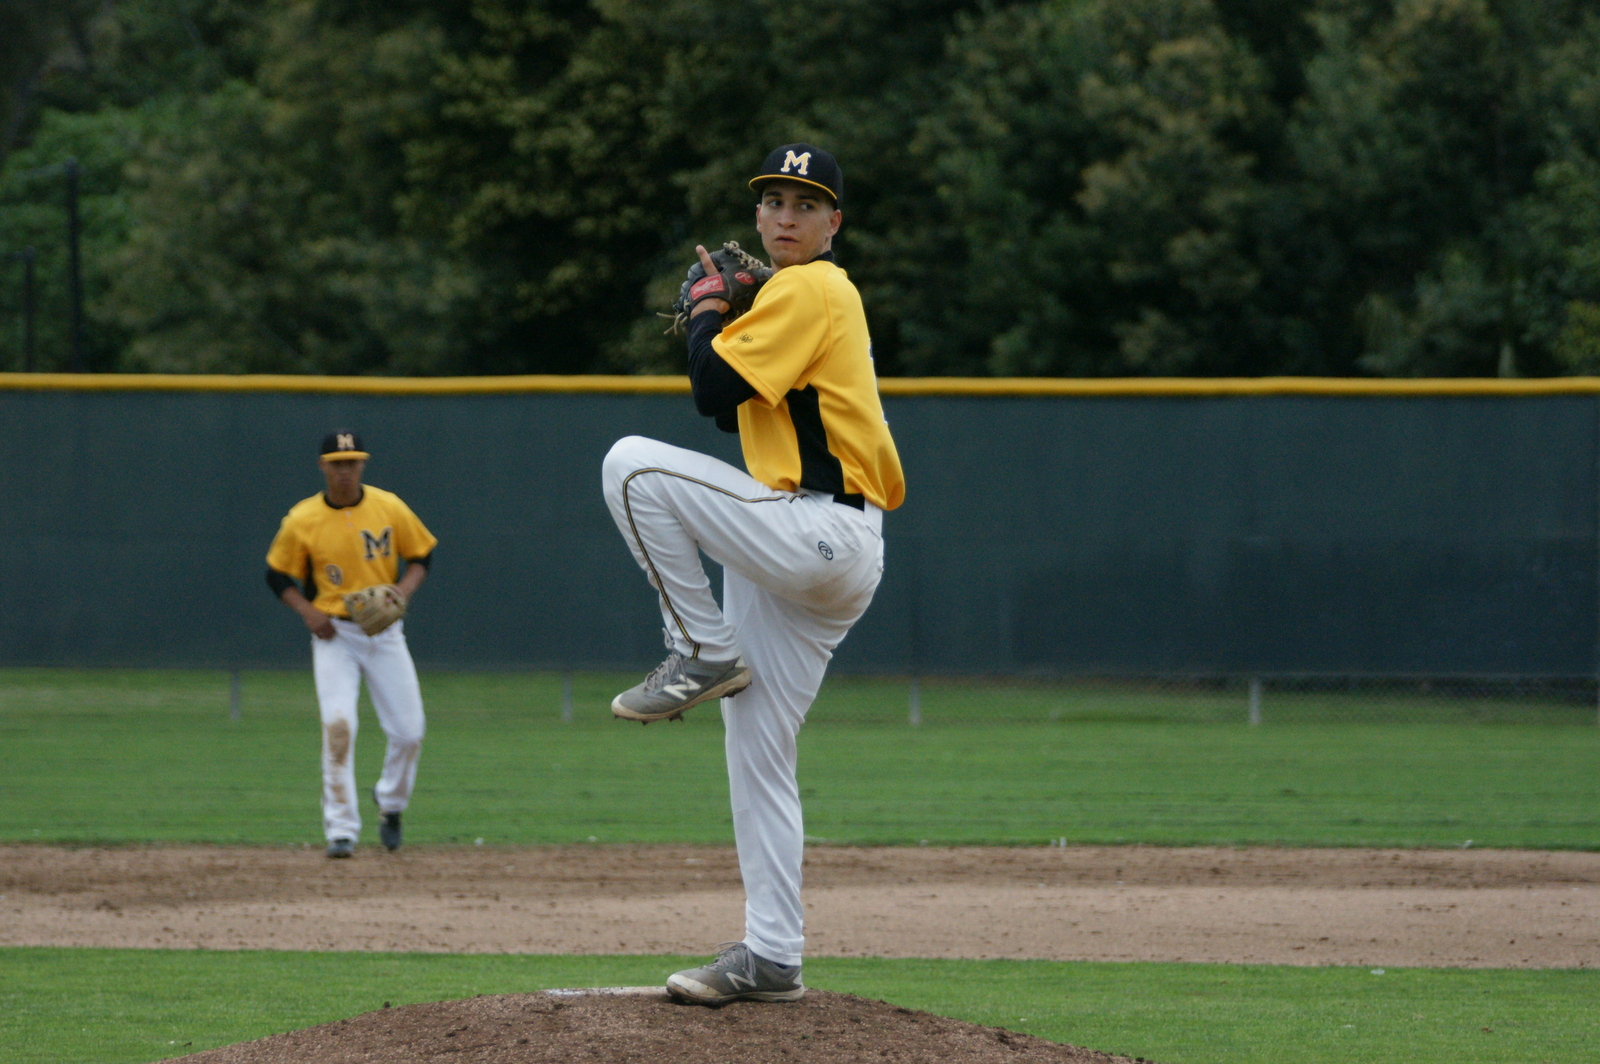 College of Marin Baseball Downs Laney 10-8 in Final Tune Up Before Conference Play